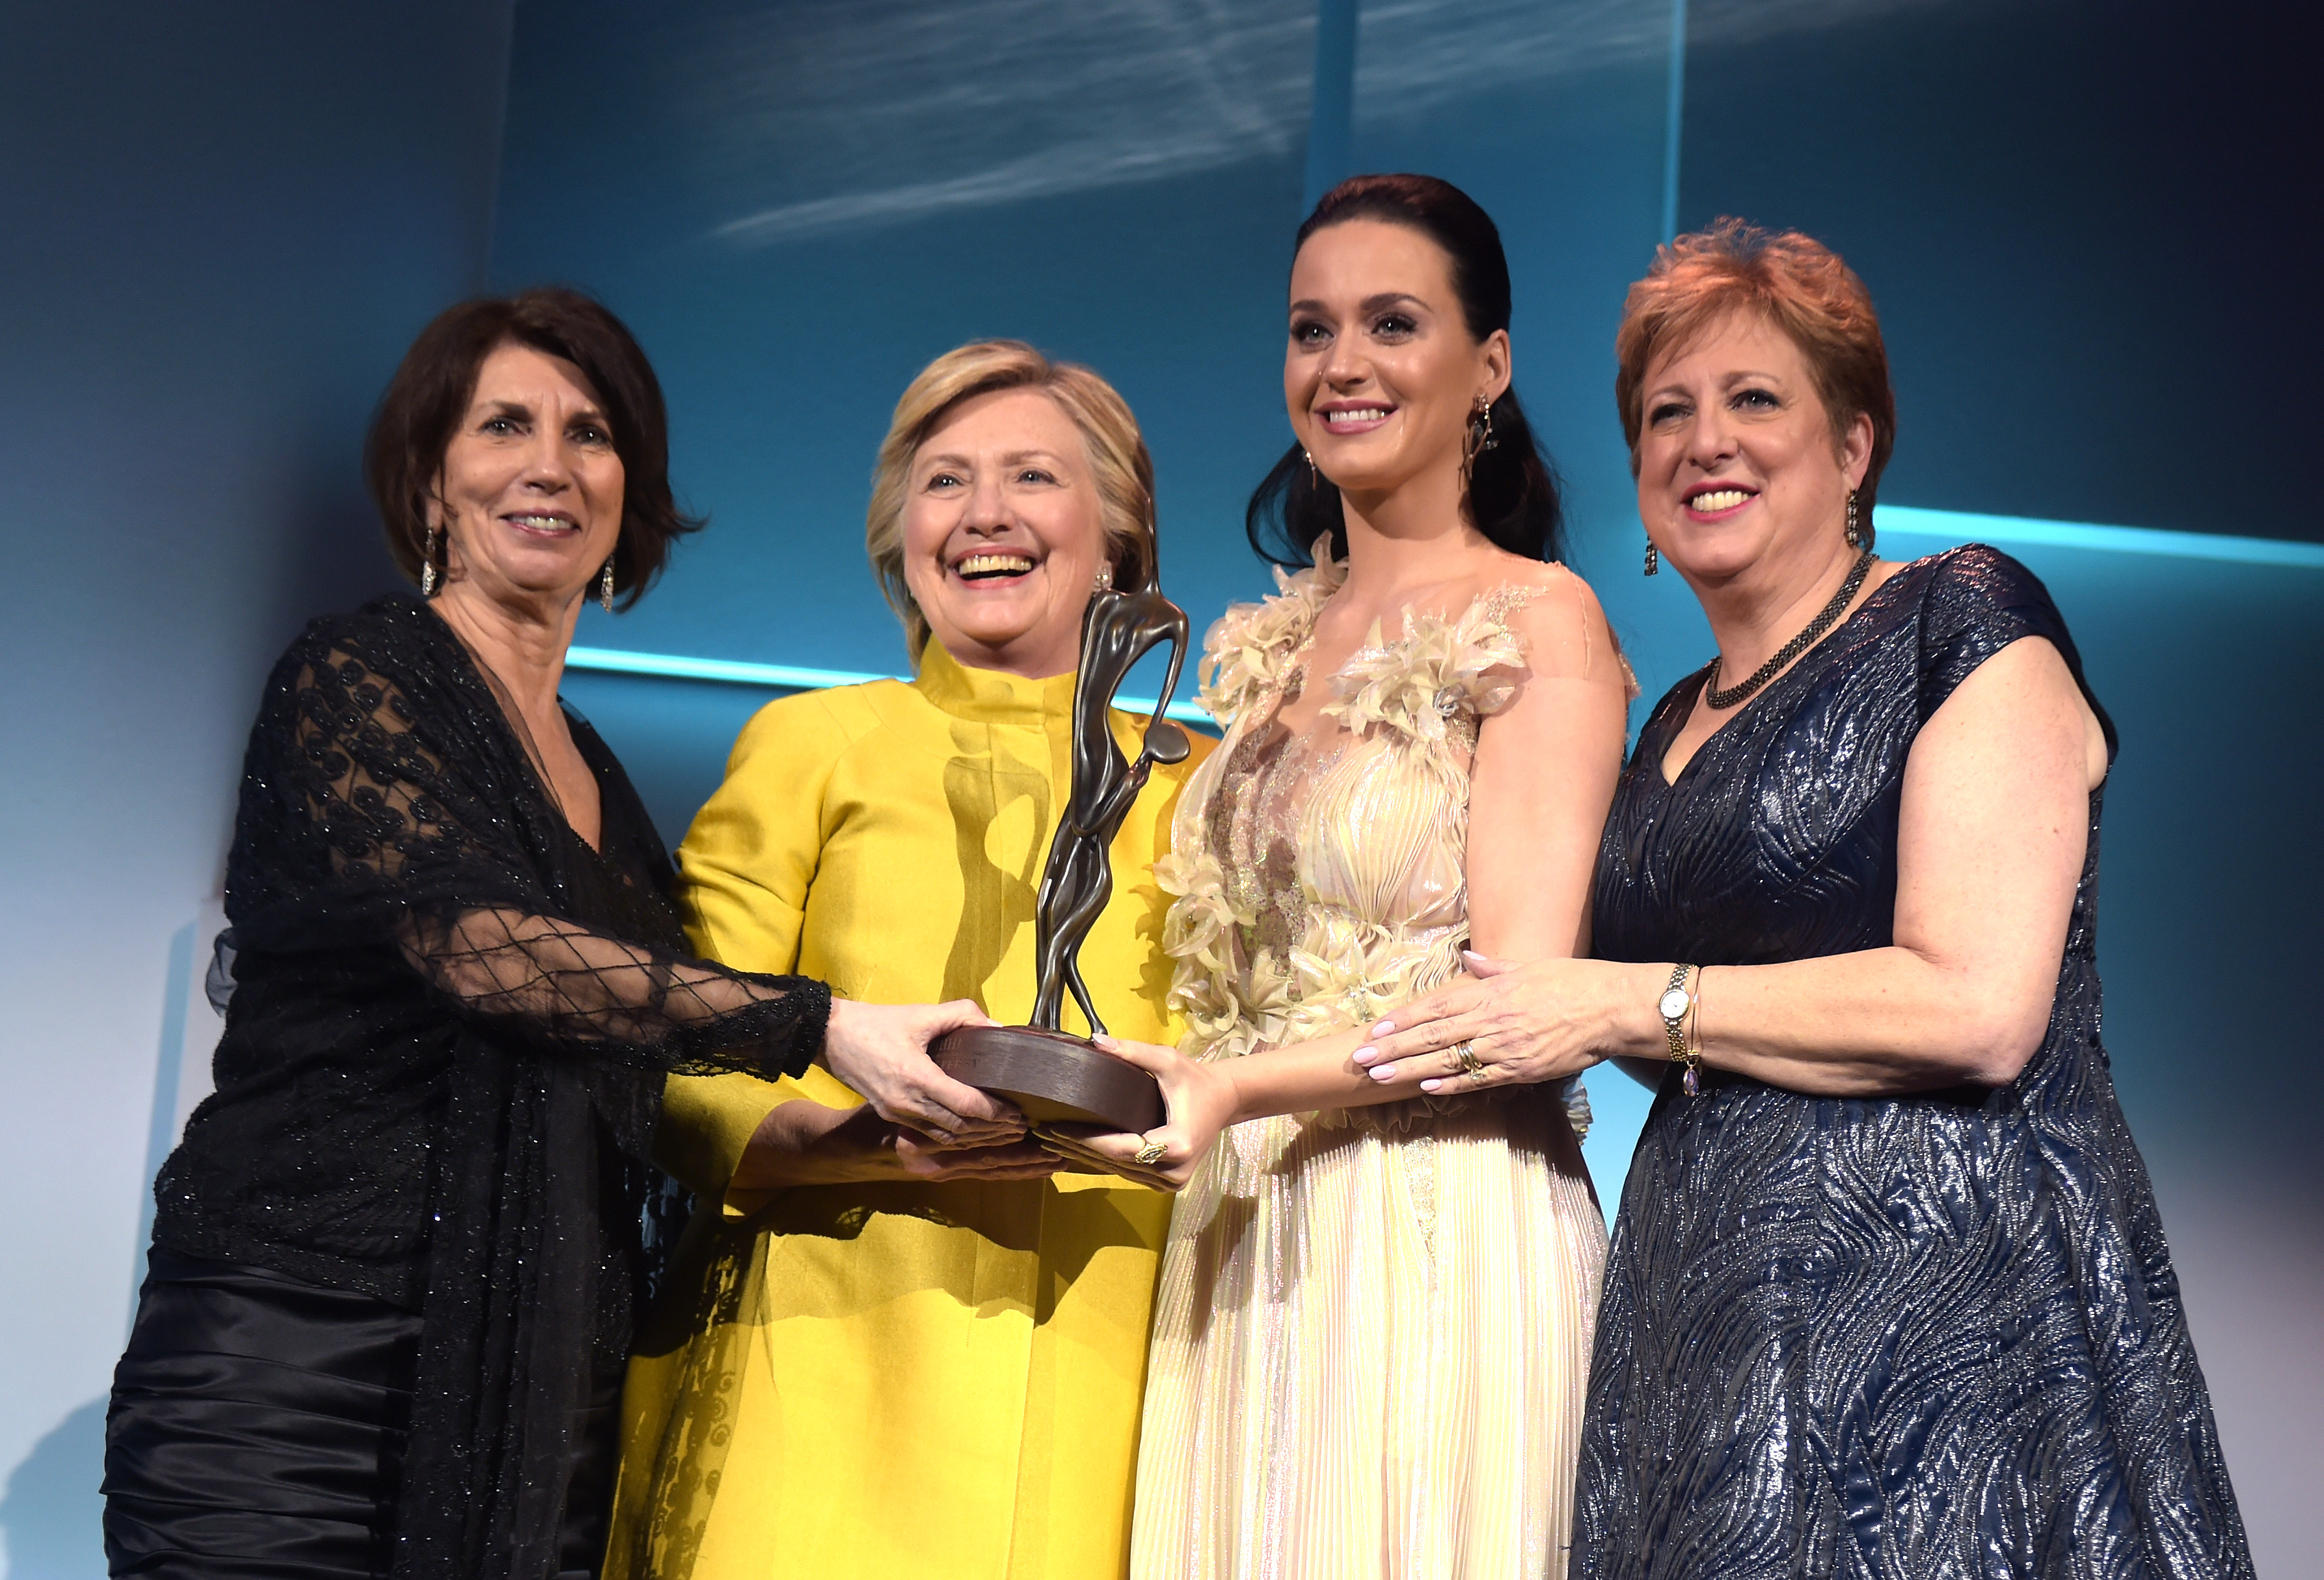 (L-R) Pamela Fiori, Hillary Clinton, Katy Perry, and Caryl Stern speak on stage during the 12th annual UNICEF Snowflake Ball at Cipriani Wall Street on Nov. 29, 2016 in New York City.